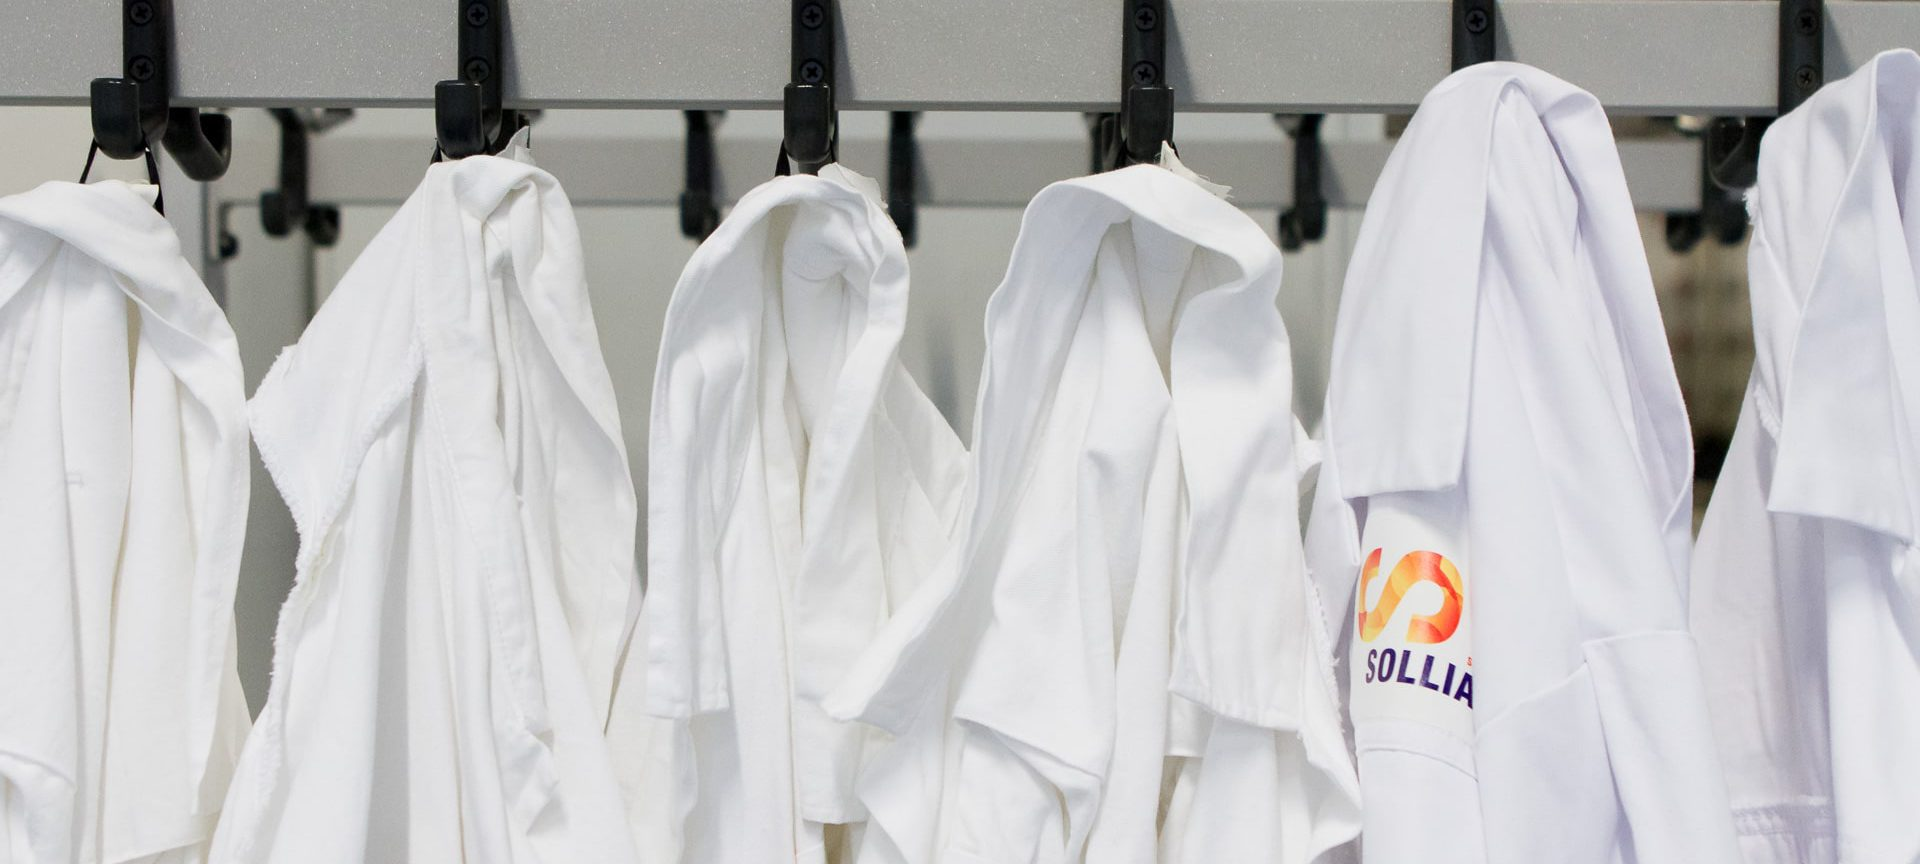 Solliance lab coats